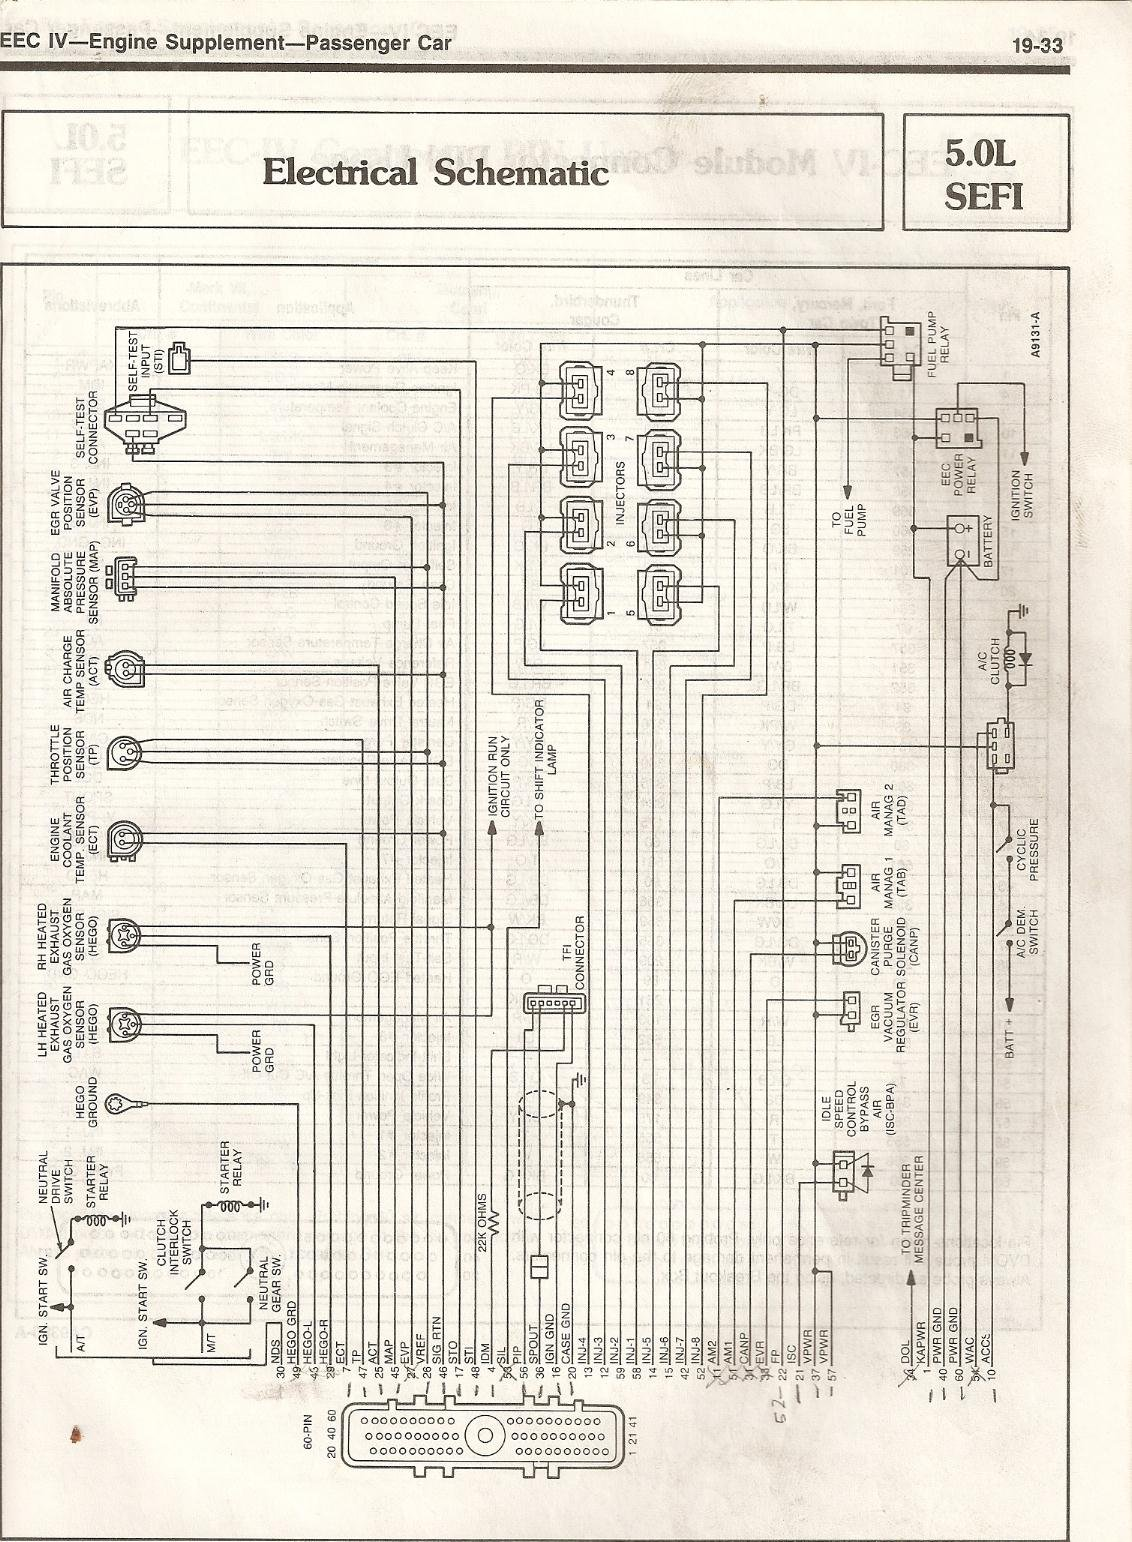 hight resolution of 495529d1454445979 302 5 0 efi swap computer pins 1986 5 0 eec pinout eec